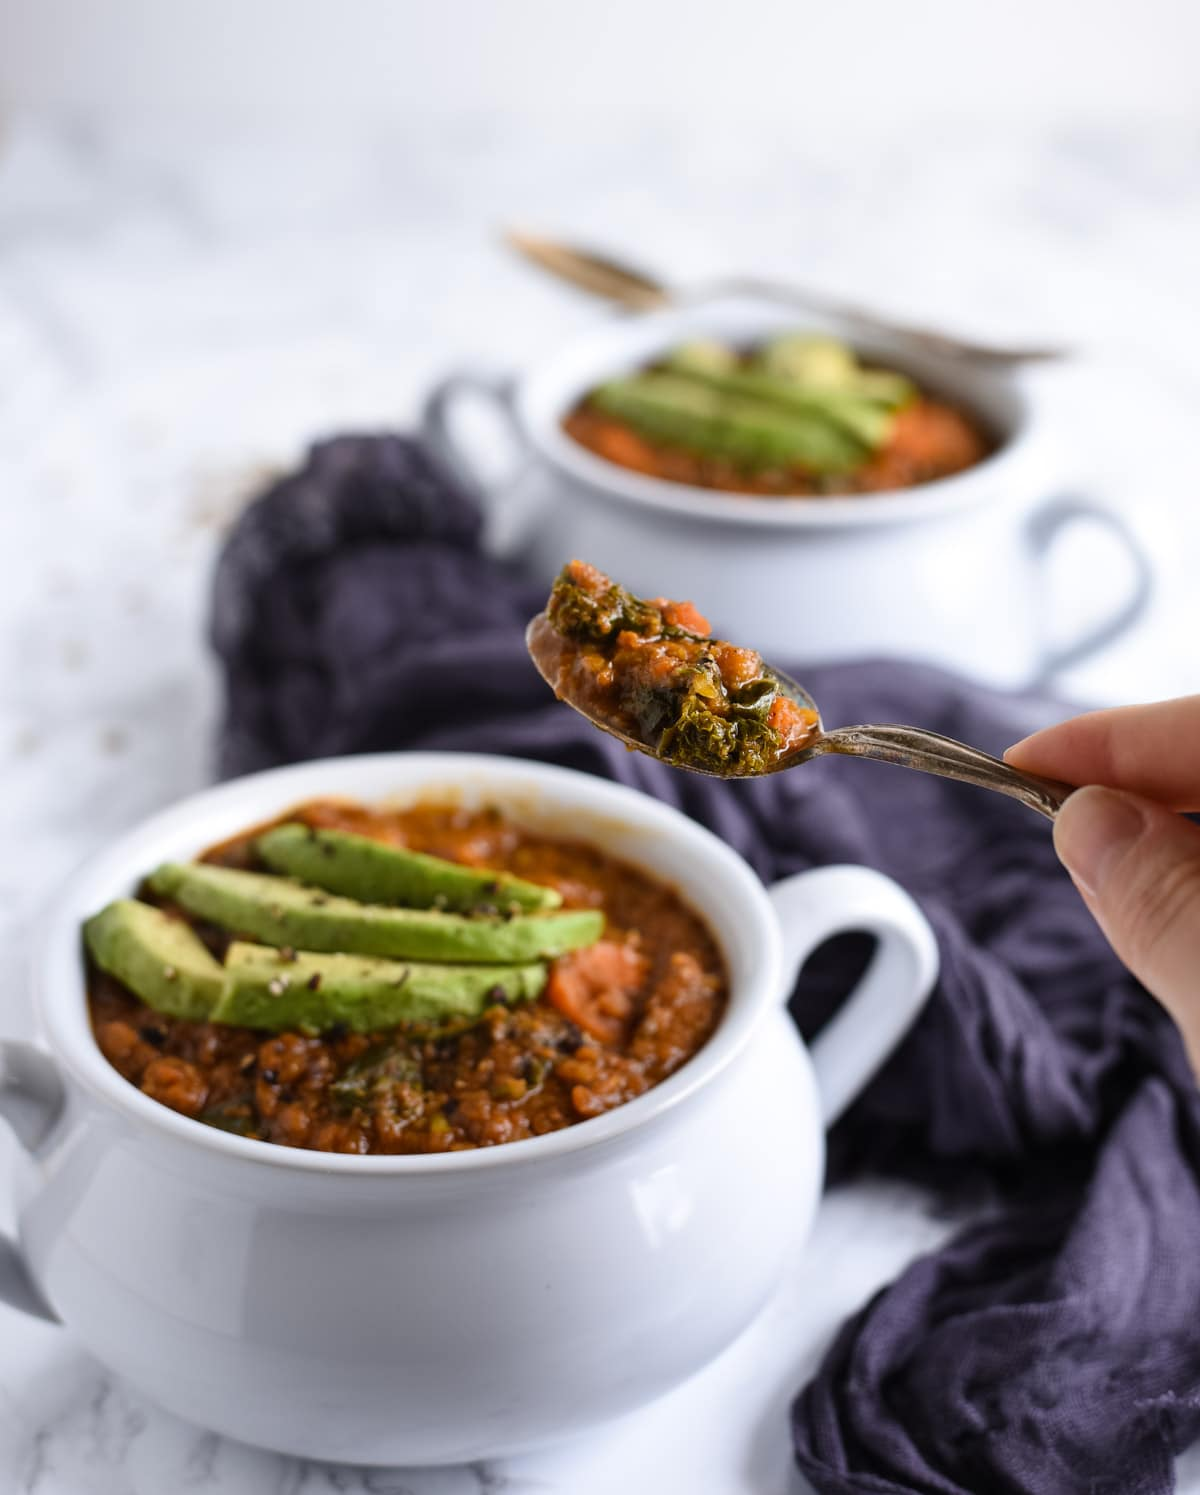 Curry lentil soup bite in spoon